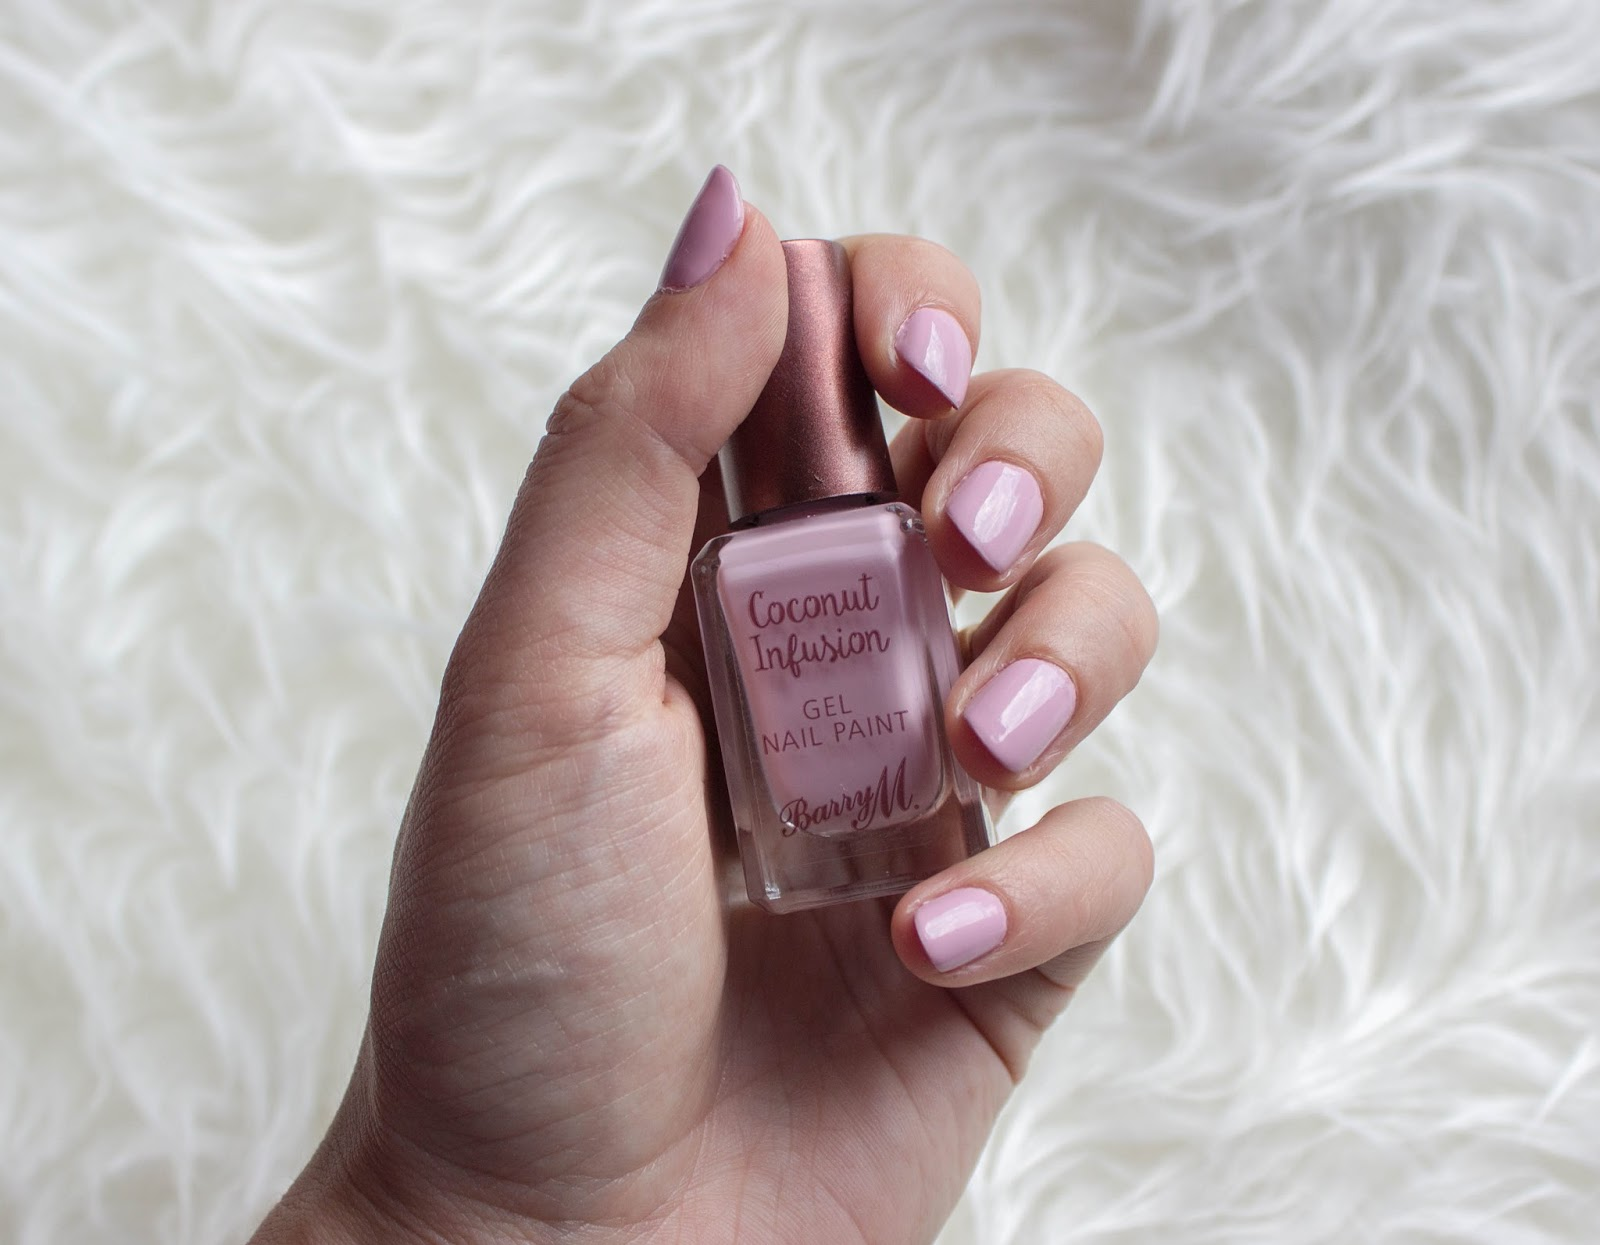 Barry M Coconut Infusion, Surfboard